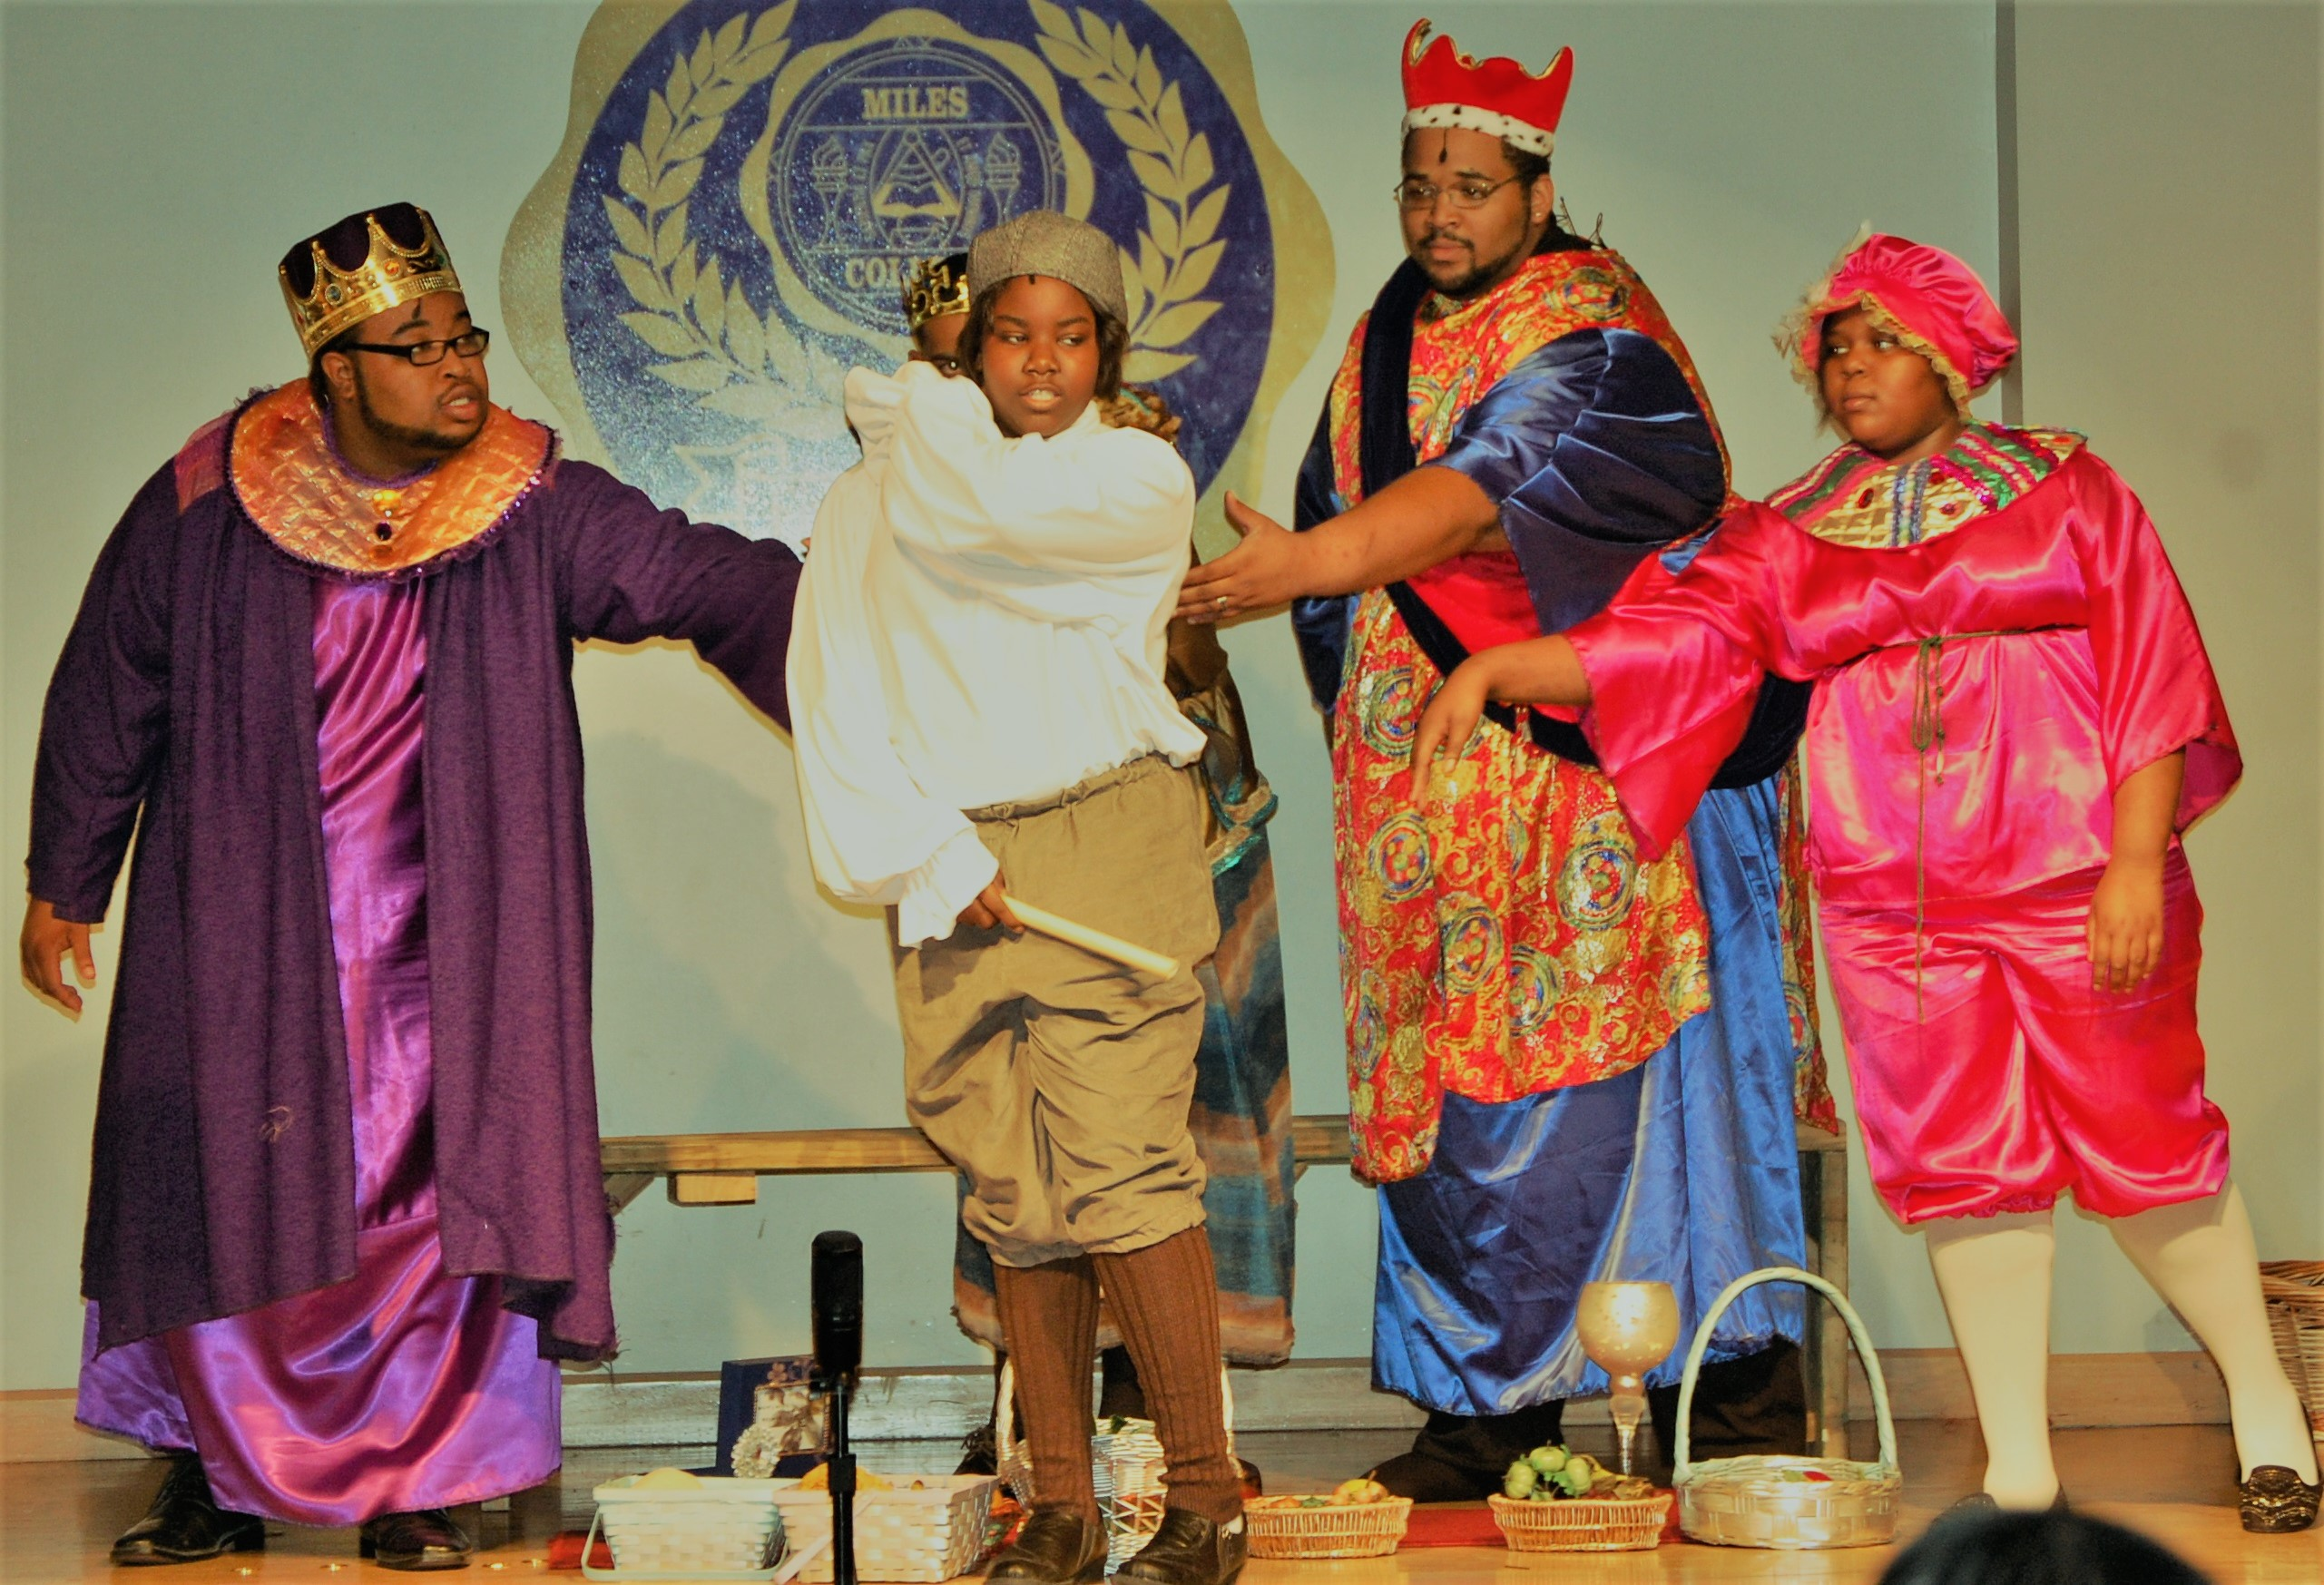 Diamond Sparks (second from left) performs in a production of Amahl and the Night Visitors at Miles College. The multitalented Alabama School of Fine Arts junior is set to sing in an Honors Performance Choir in July in Sydney, Australia.